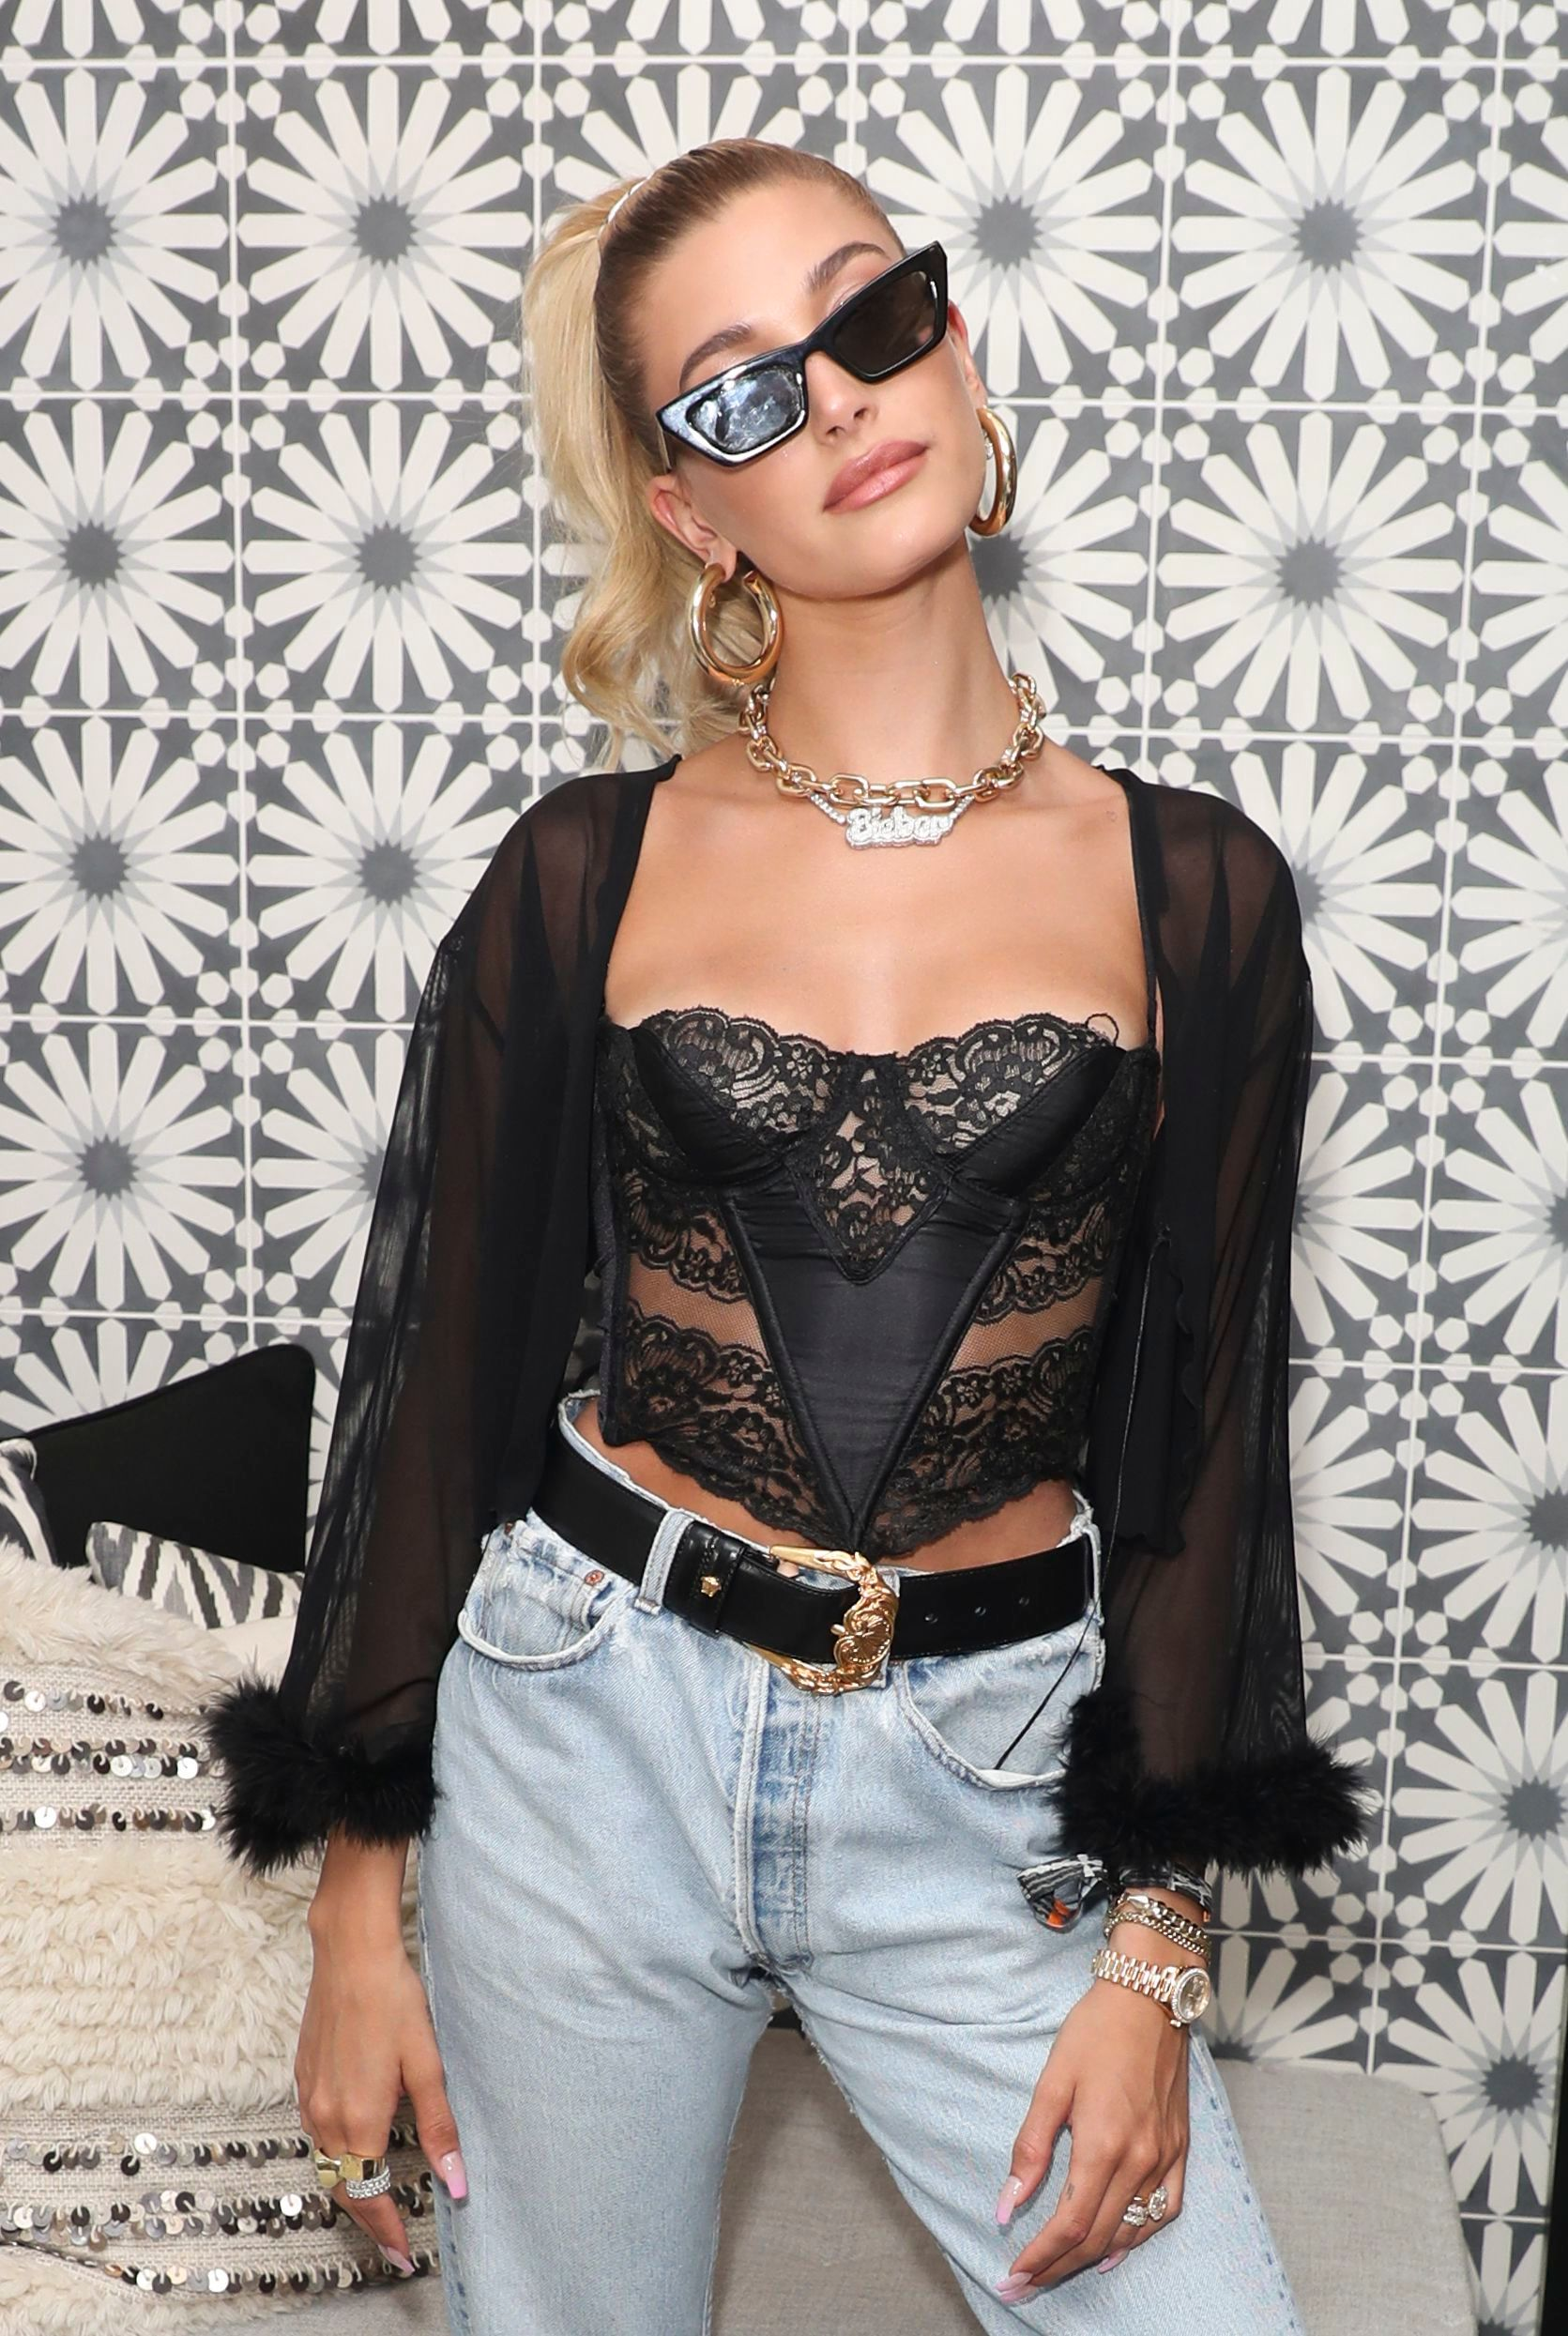 Hailey BieberLevi's Brunch, Coachella Valley Music and Arts Festival, Weekend 1, Day 2, Indian Wells, USA - 13 Apr 2019